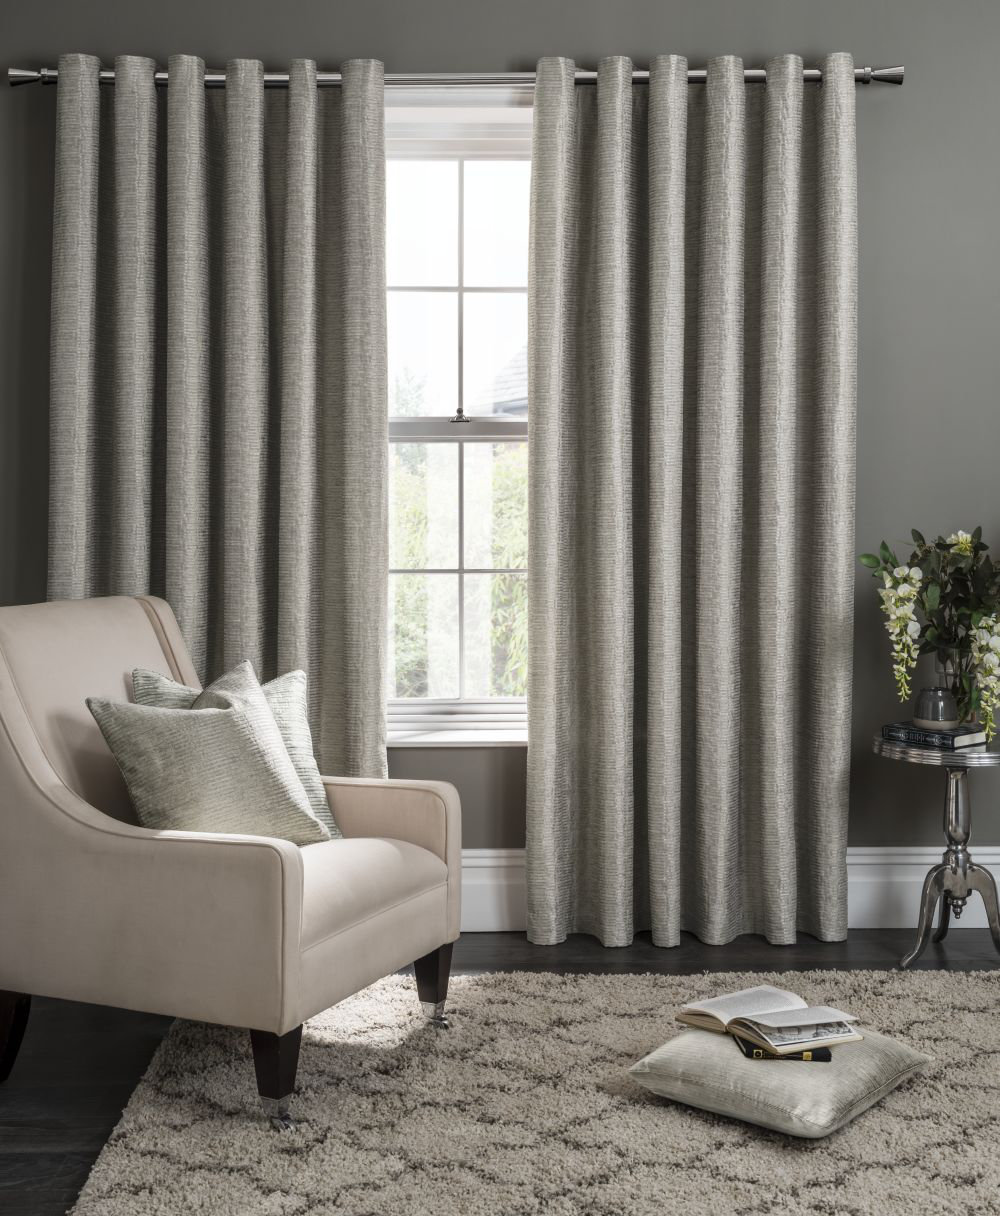 Studio G Campello Eyelet Curtains  Putty Ready Made Curtains - Product code: M1101/03/46X5